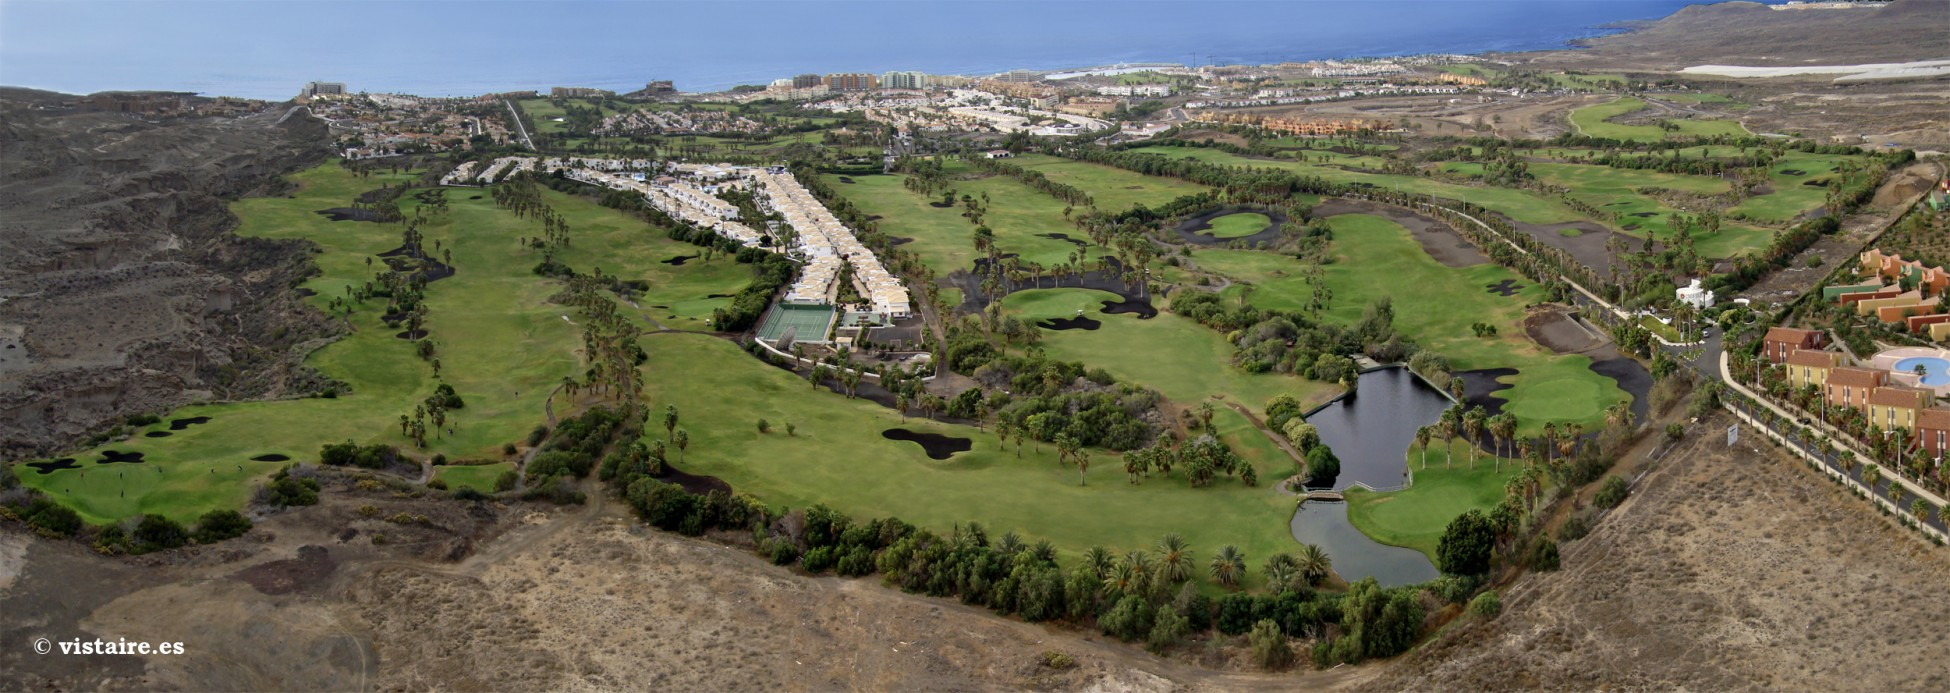 View of Golf del Sur on the island of Tenerife